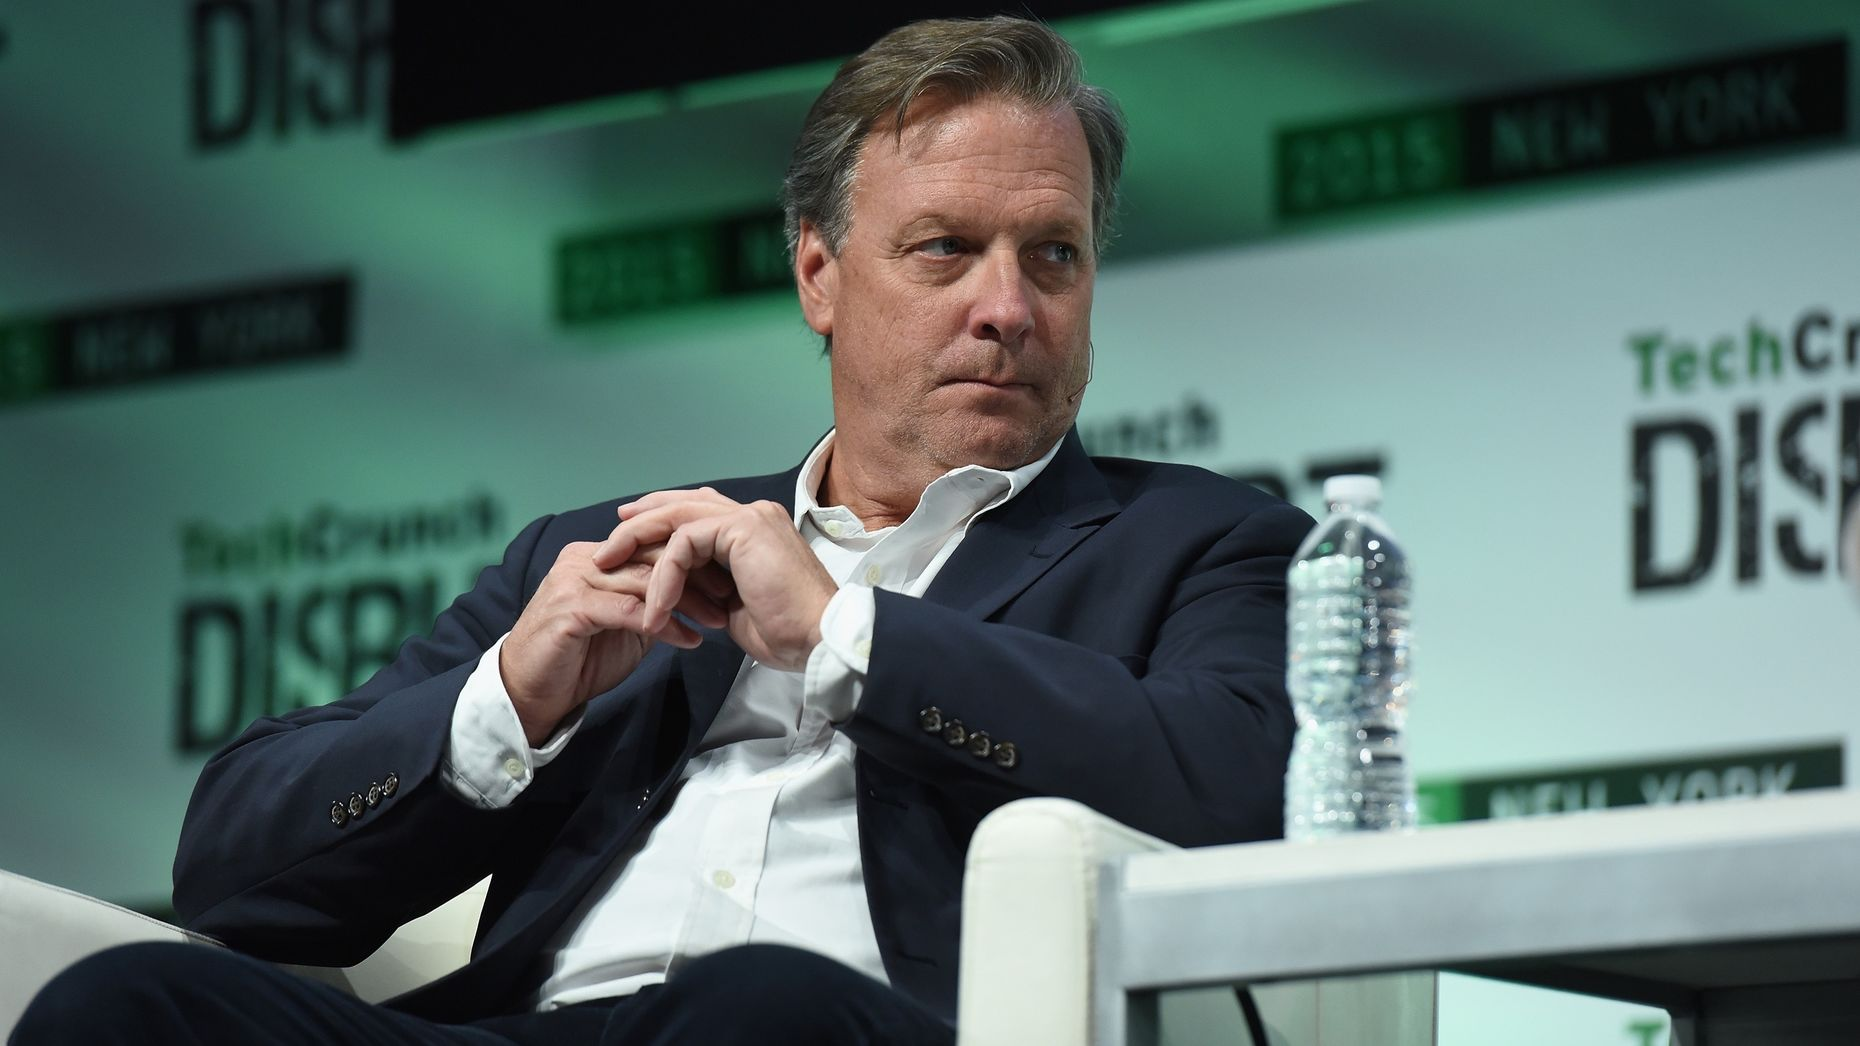 BAMTech CEO Bob Bowman. Photo by Flickr/TechCrunch.